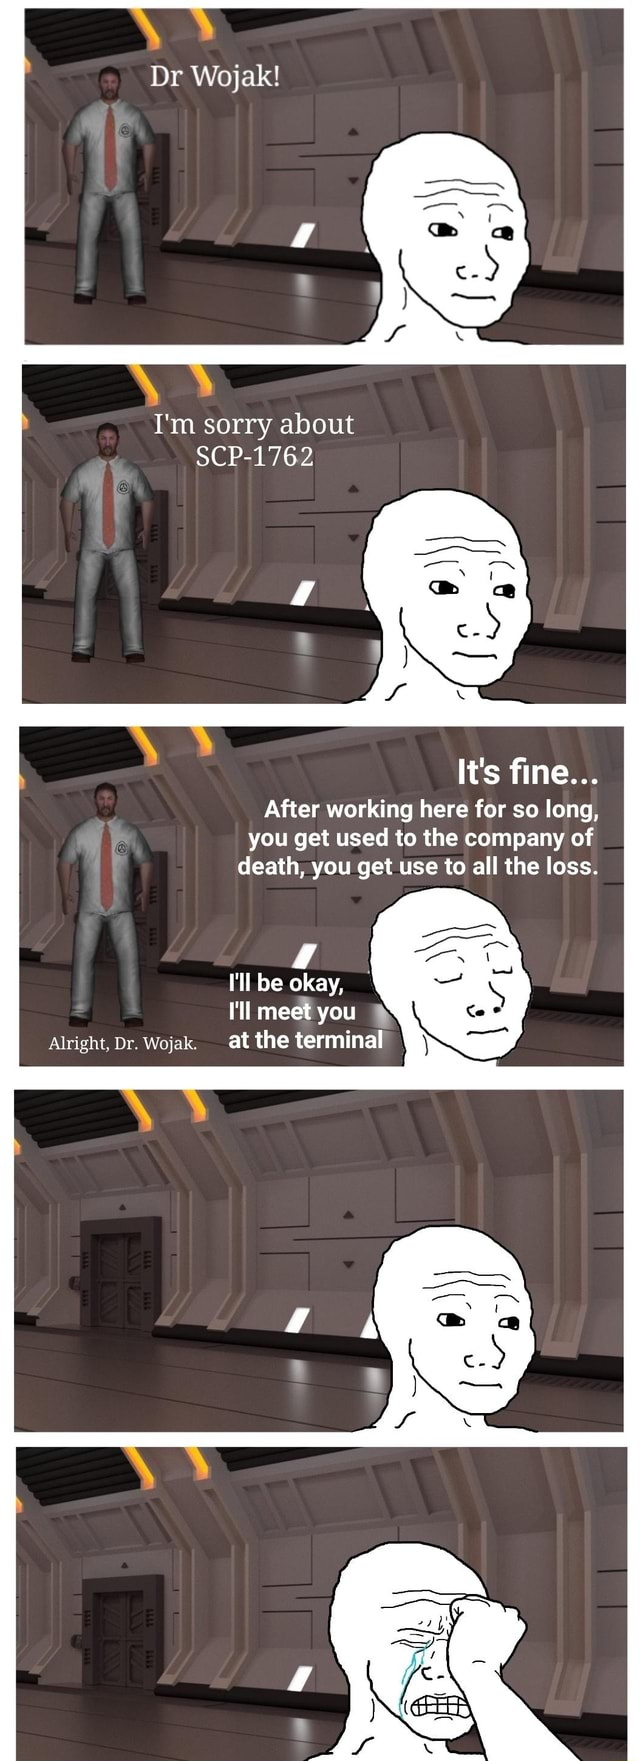 Dr Wojak I'm sorry about SCP 1762 It's fine After working here for so long, you get used to the company of death, you get use to all the loss. I'll be okay, ll meet you Alright. br. Wojak. at the terminal meme